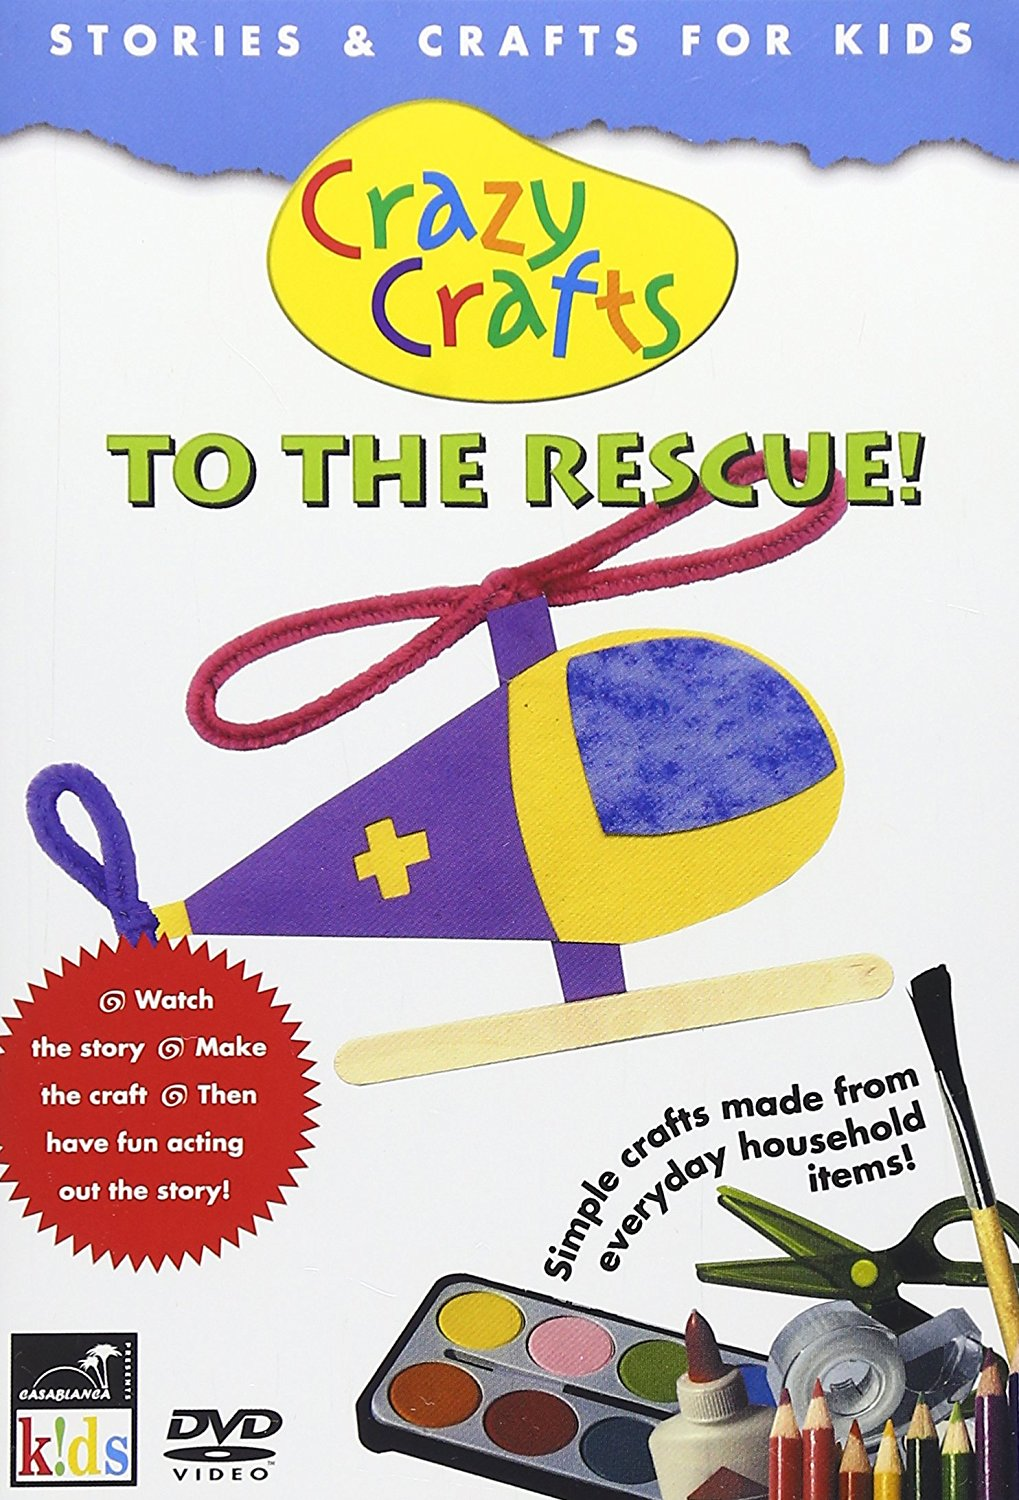 To The Rescue by Crazy Crafts